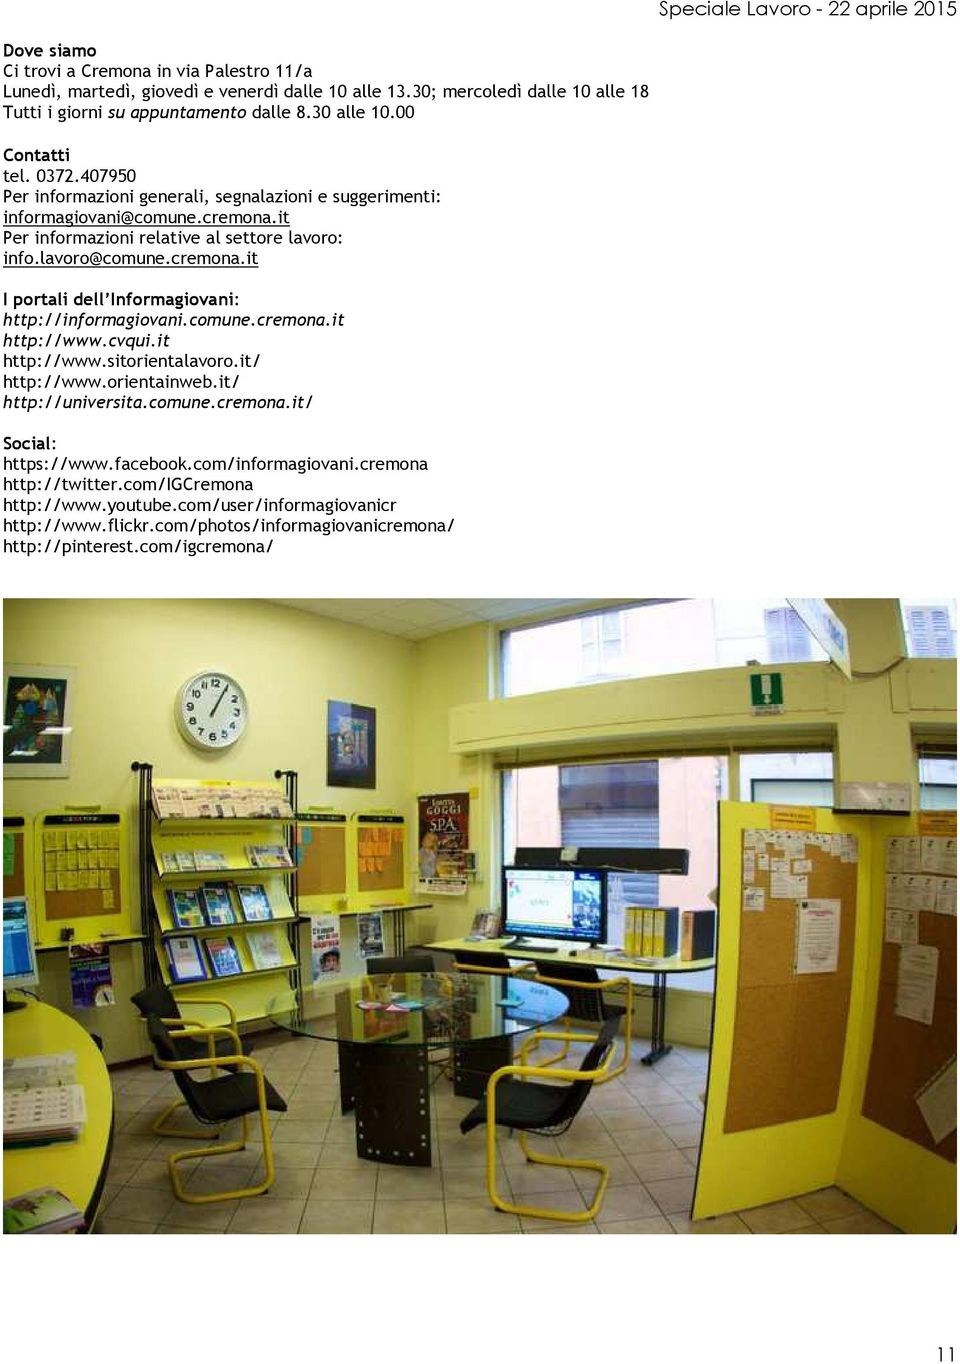 comune.cremona.it http://www.cvqui.it http://www.sitorientalavoro.it/ http://www.orientainweb.it/ http://universita.comune.cremona.it/ Social: https://www.facebook.com/informagiovani.